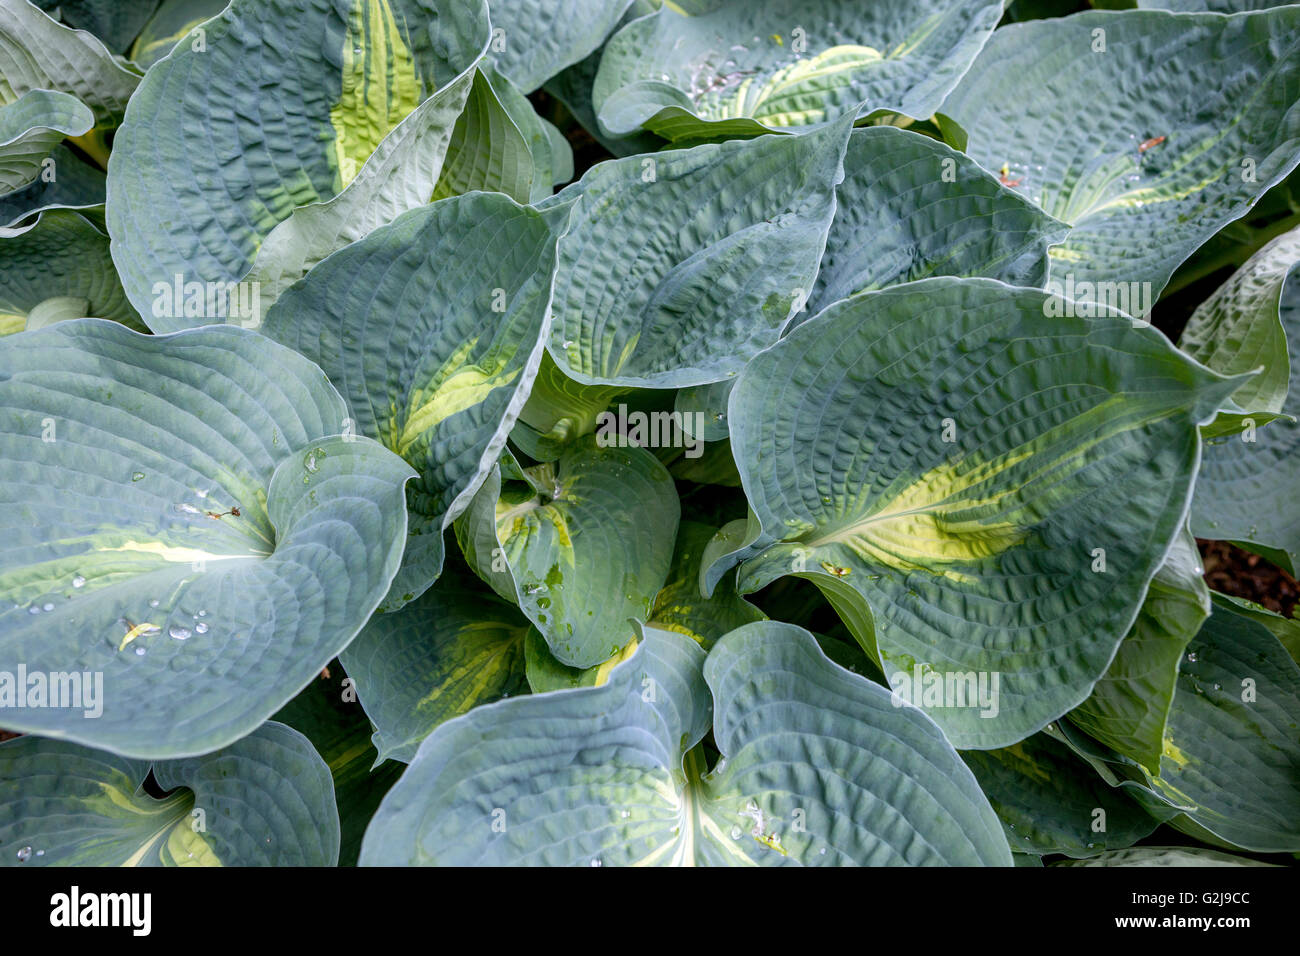 Hostas 'Great expectations' big leaves - Stock Image